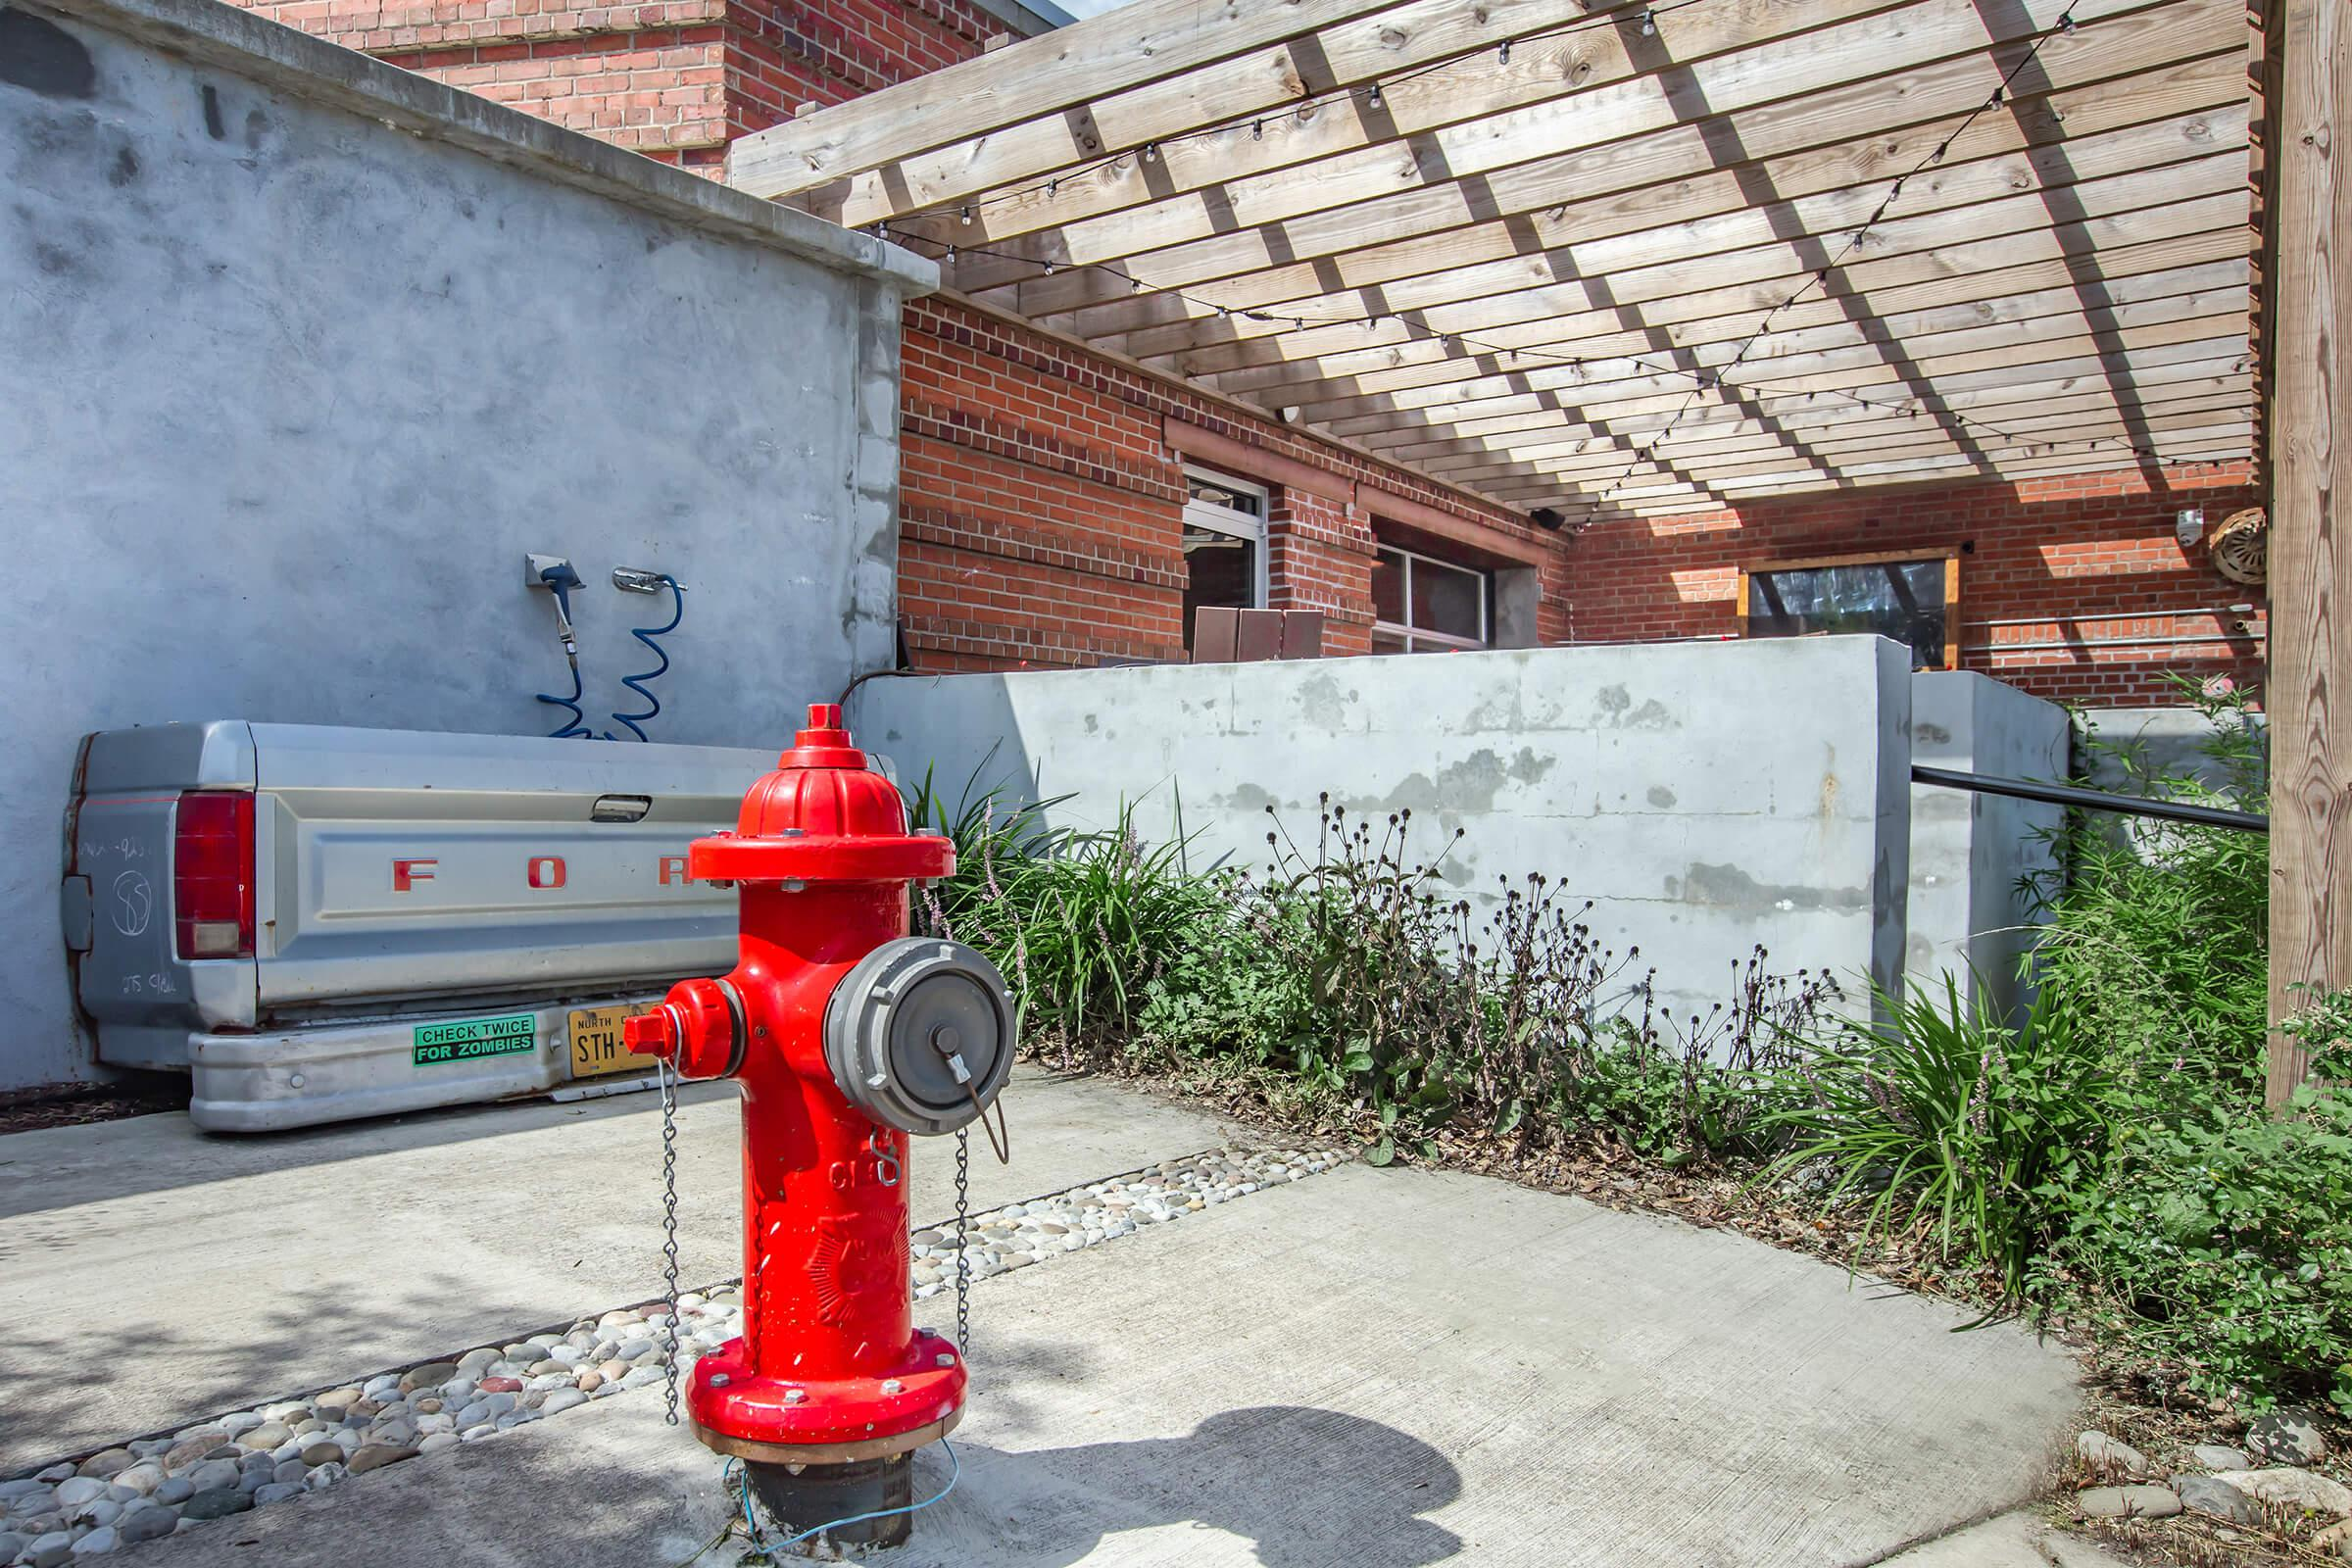 a red fire hydrant sitting on the side of a building